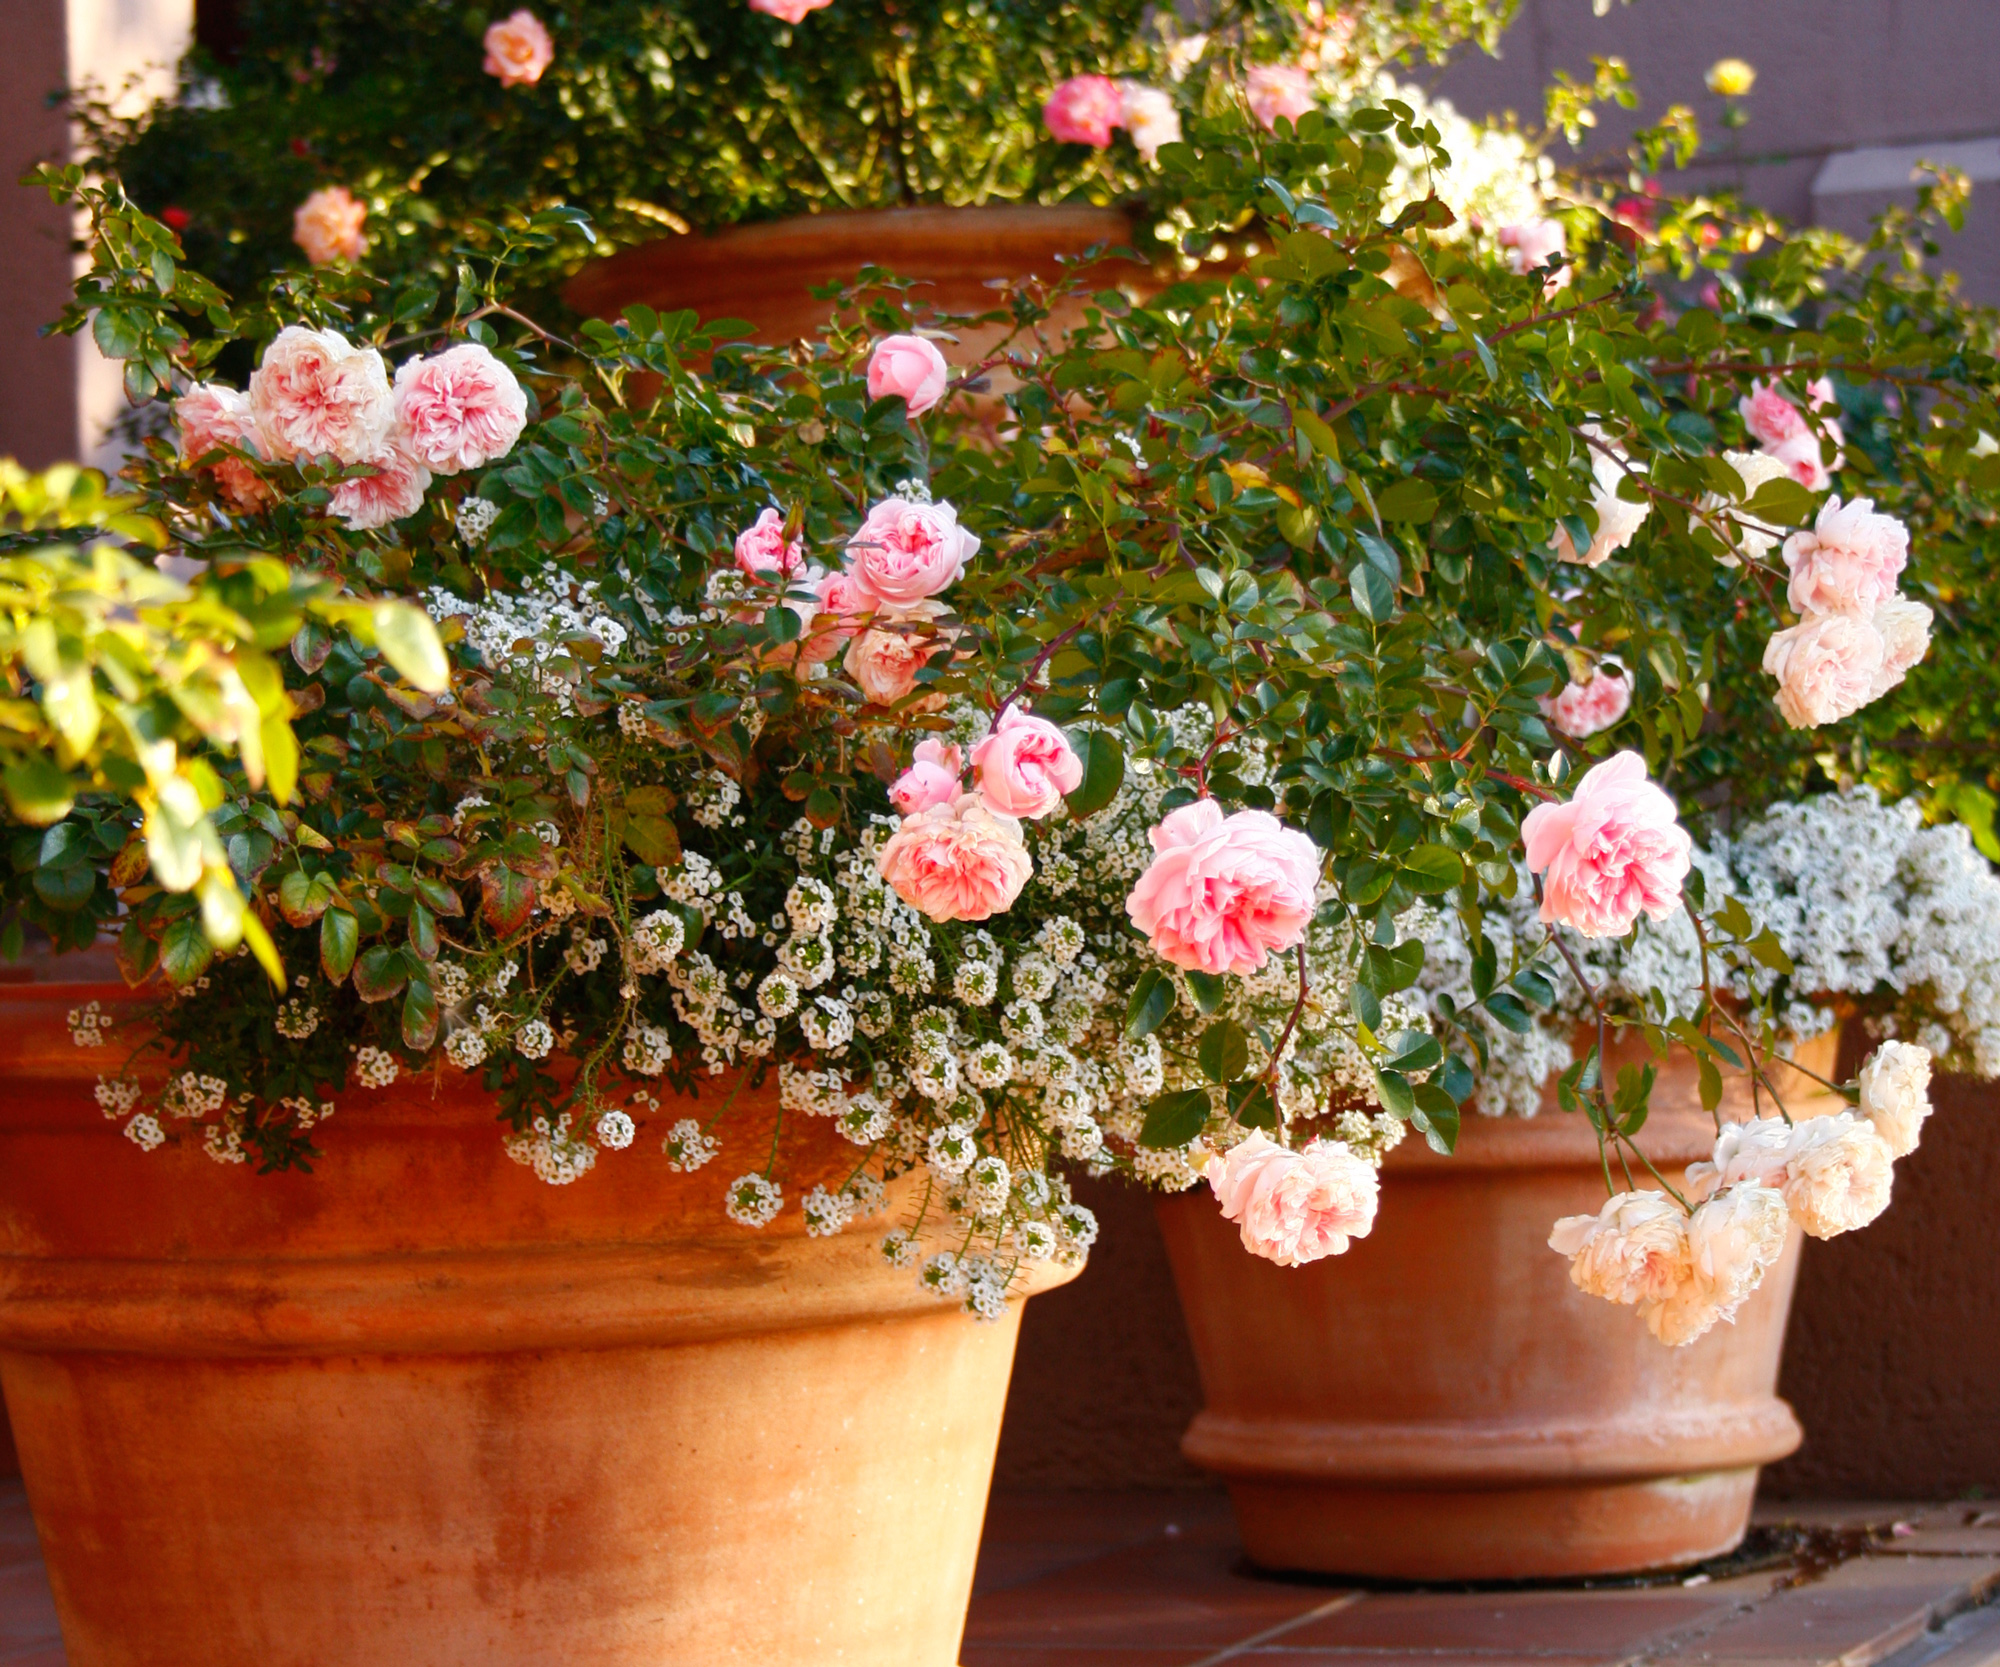 Container Gardening Growing Roses Garden Home